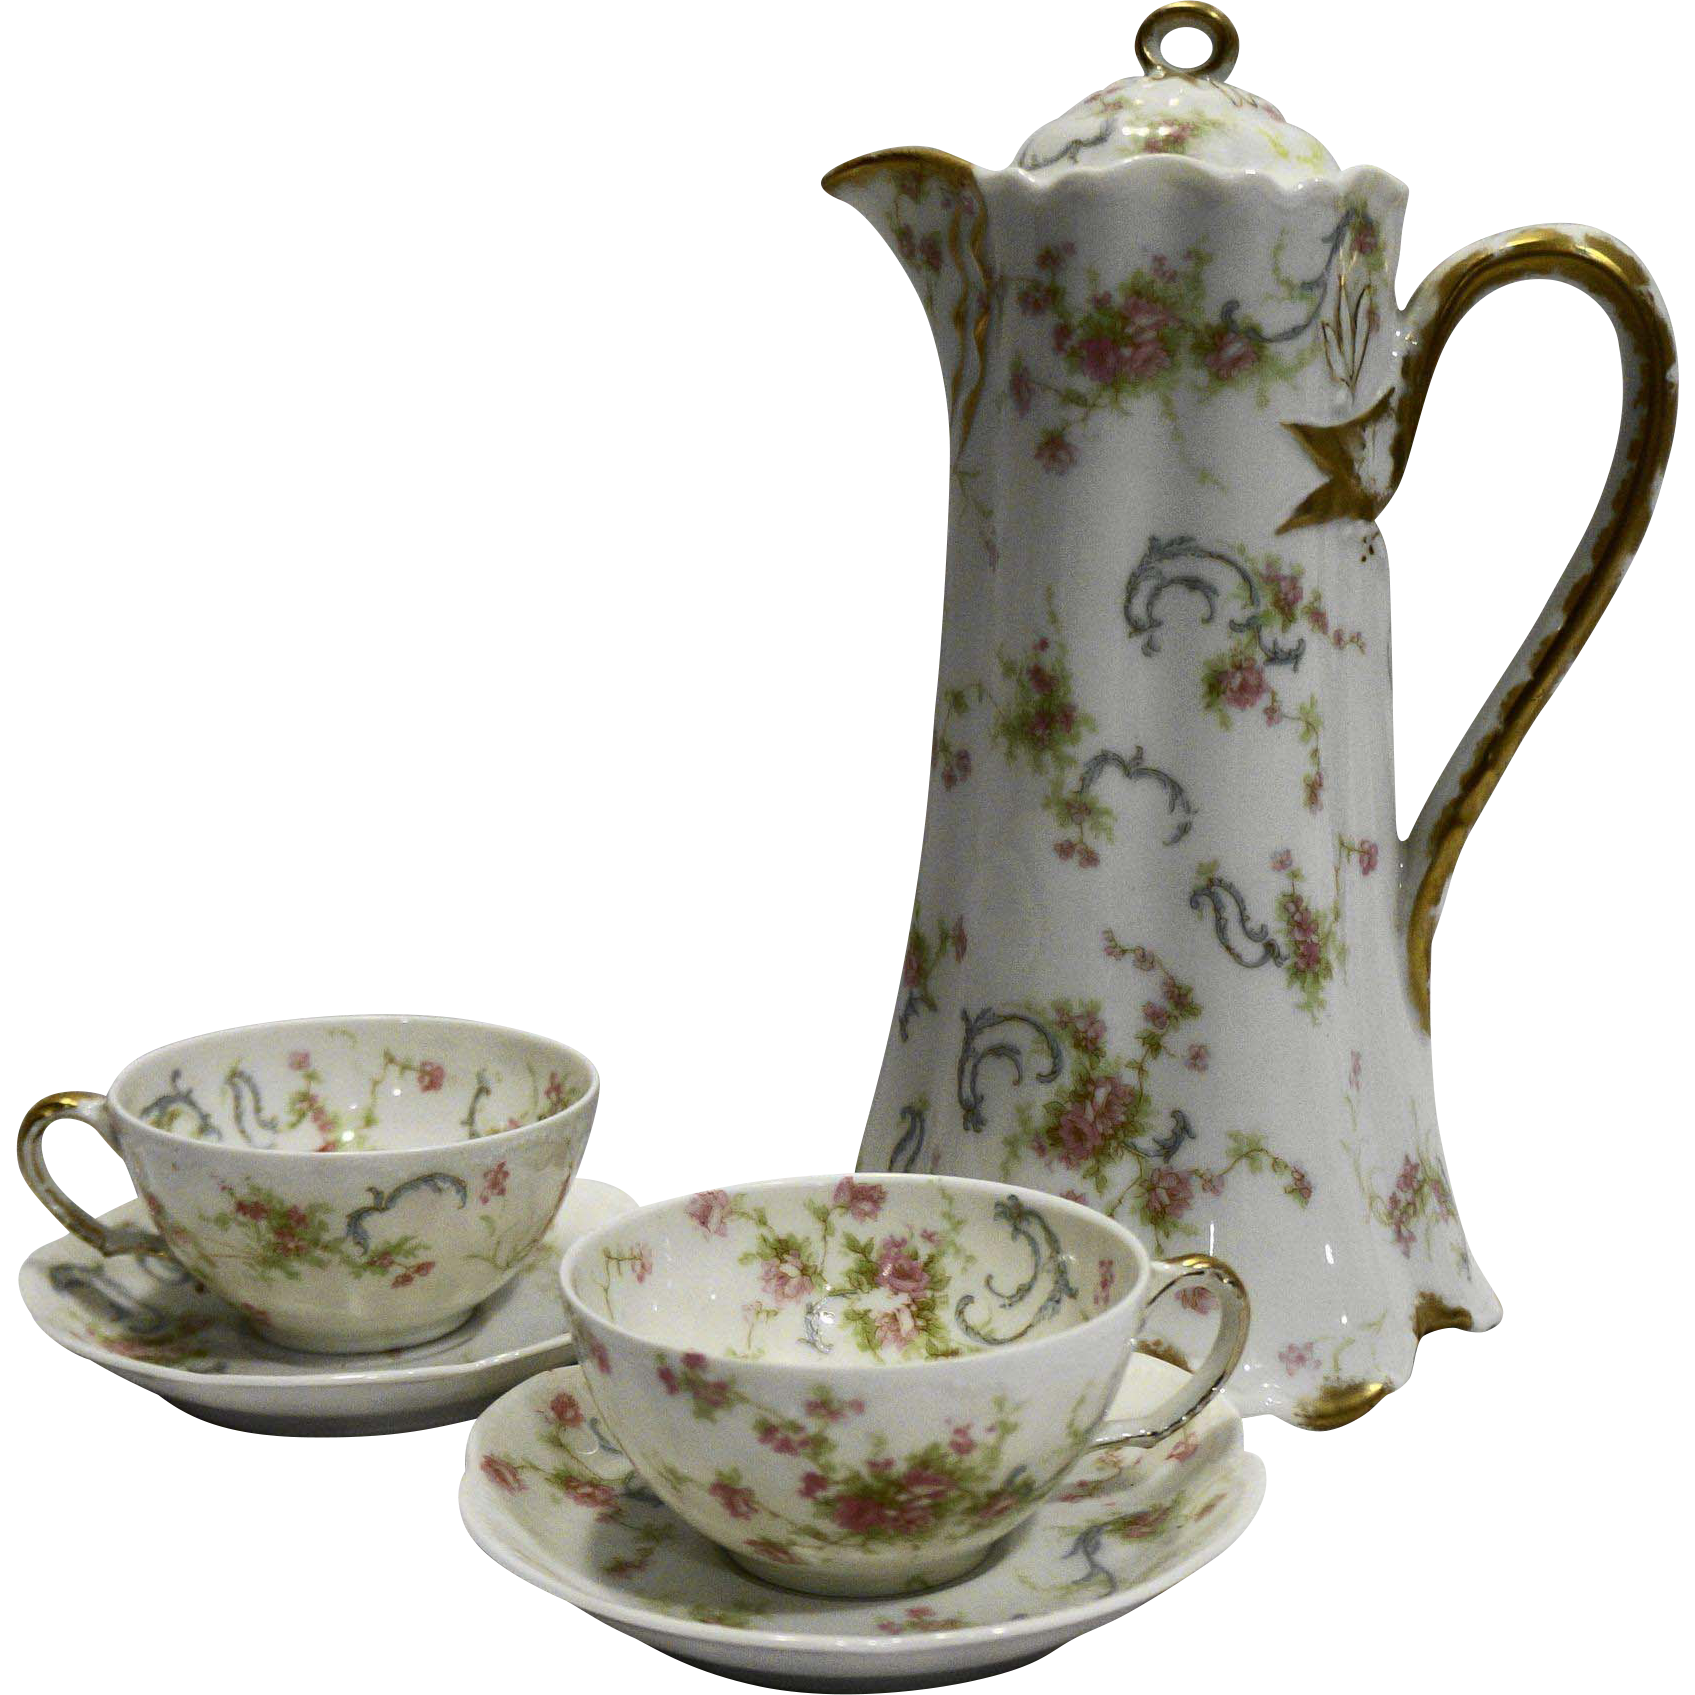 Haviland & Co. Limoges France Schleiger 57B Chocolate Pot Ranson Blank Demitasse Cups Saucers Set